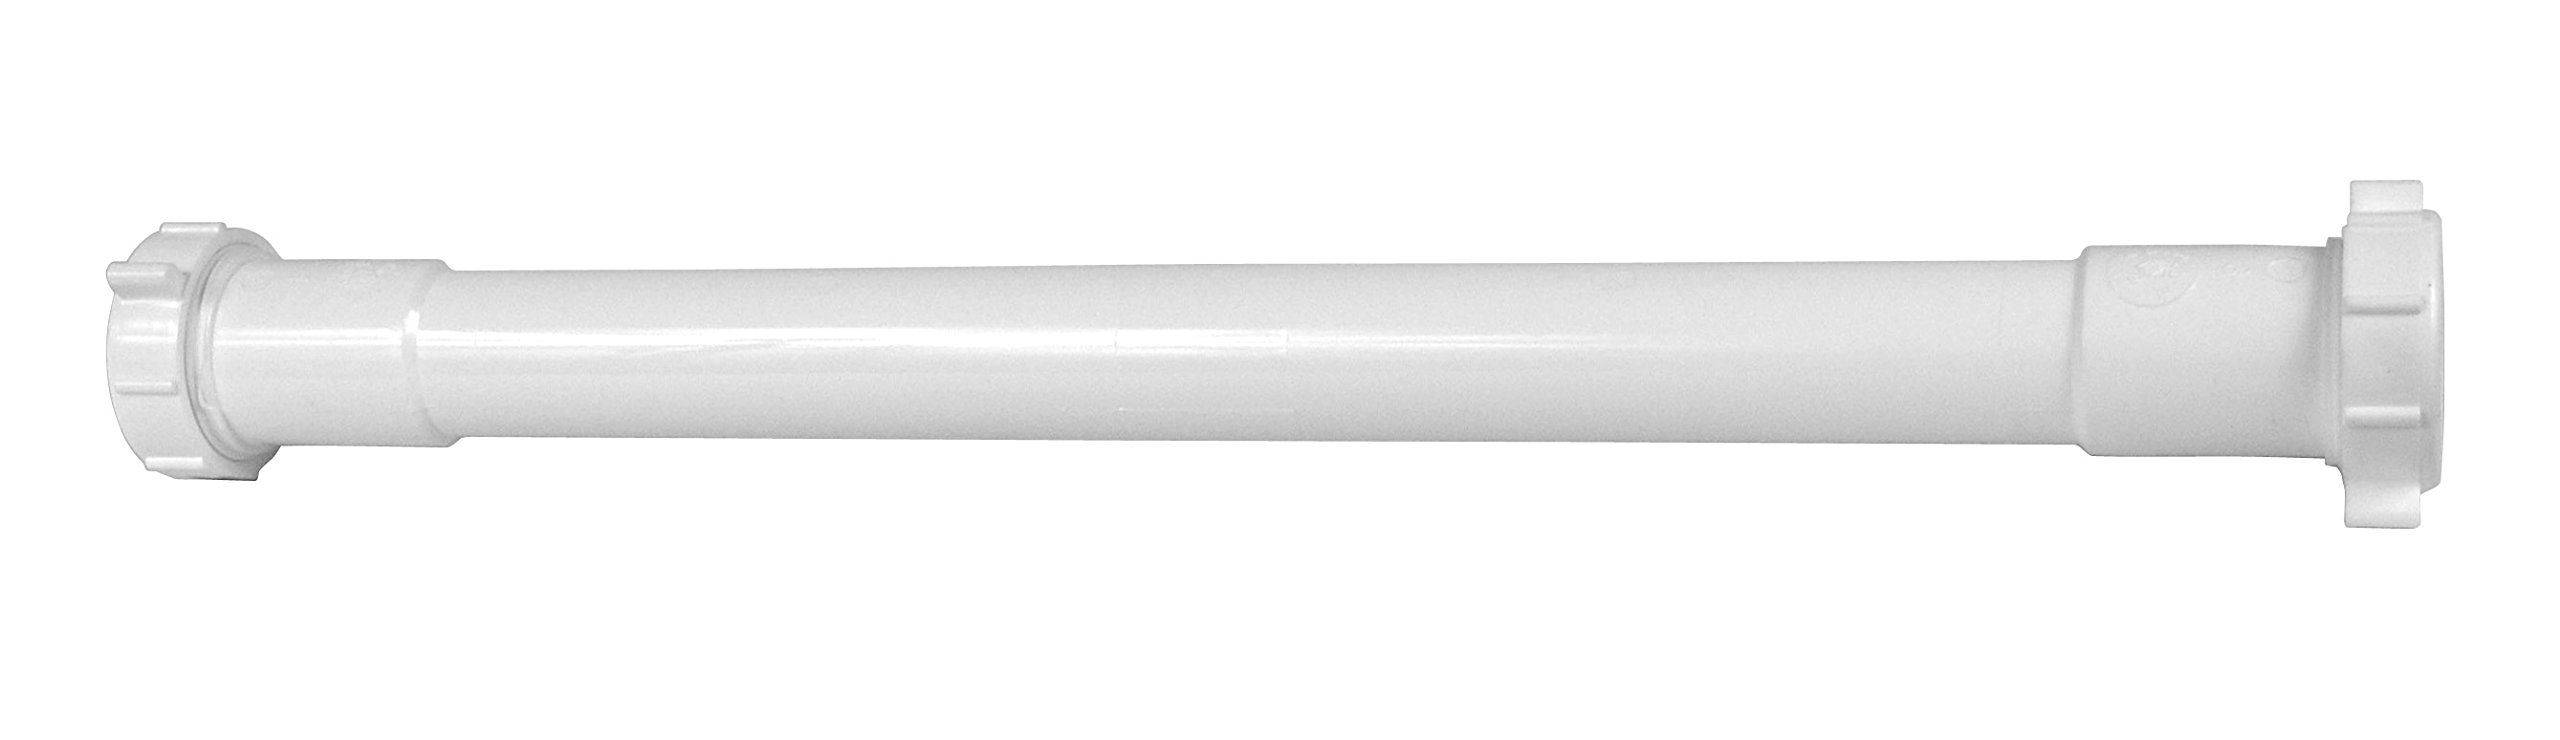 Dearborn P9791E 1-1/4'' x 16'' Plastic Double Connect Slip Joint Extension Tube, options include one or double end connection.